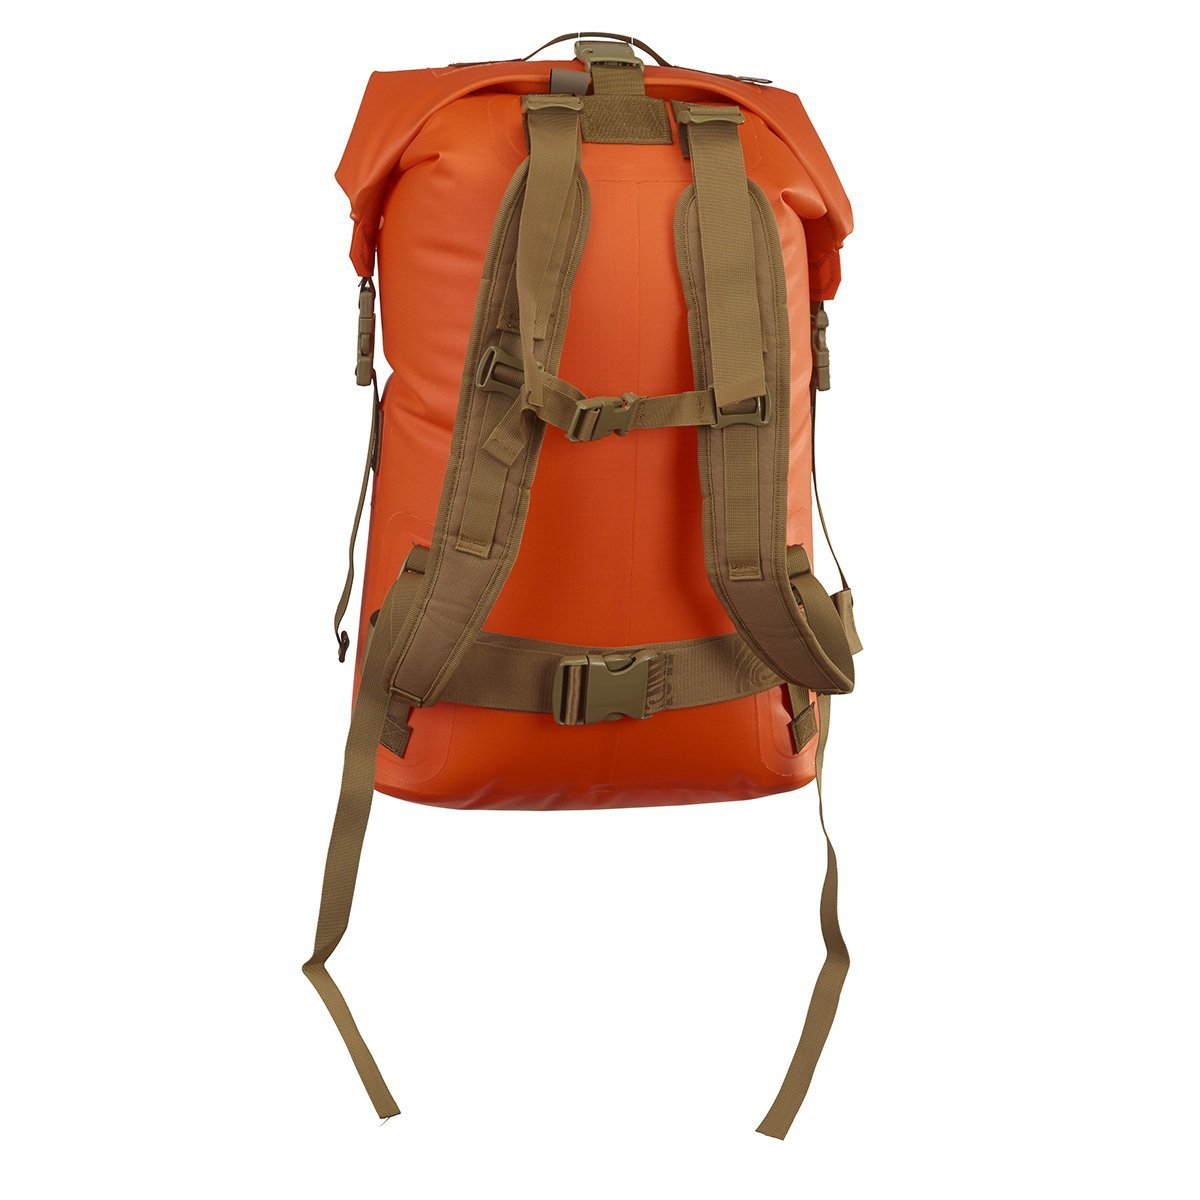 Animas Backpack - 40 Litres - Dry Bags